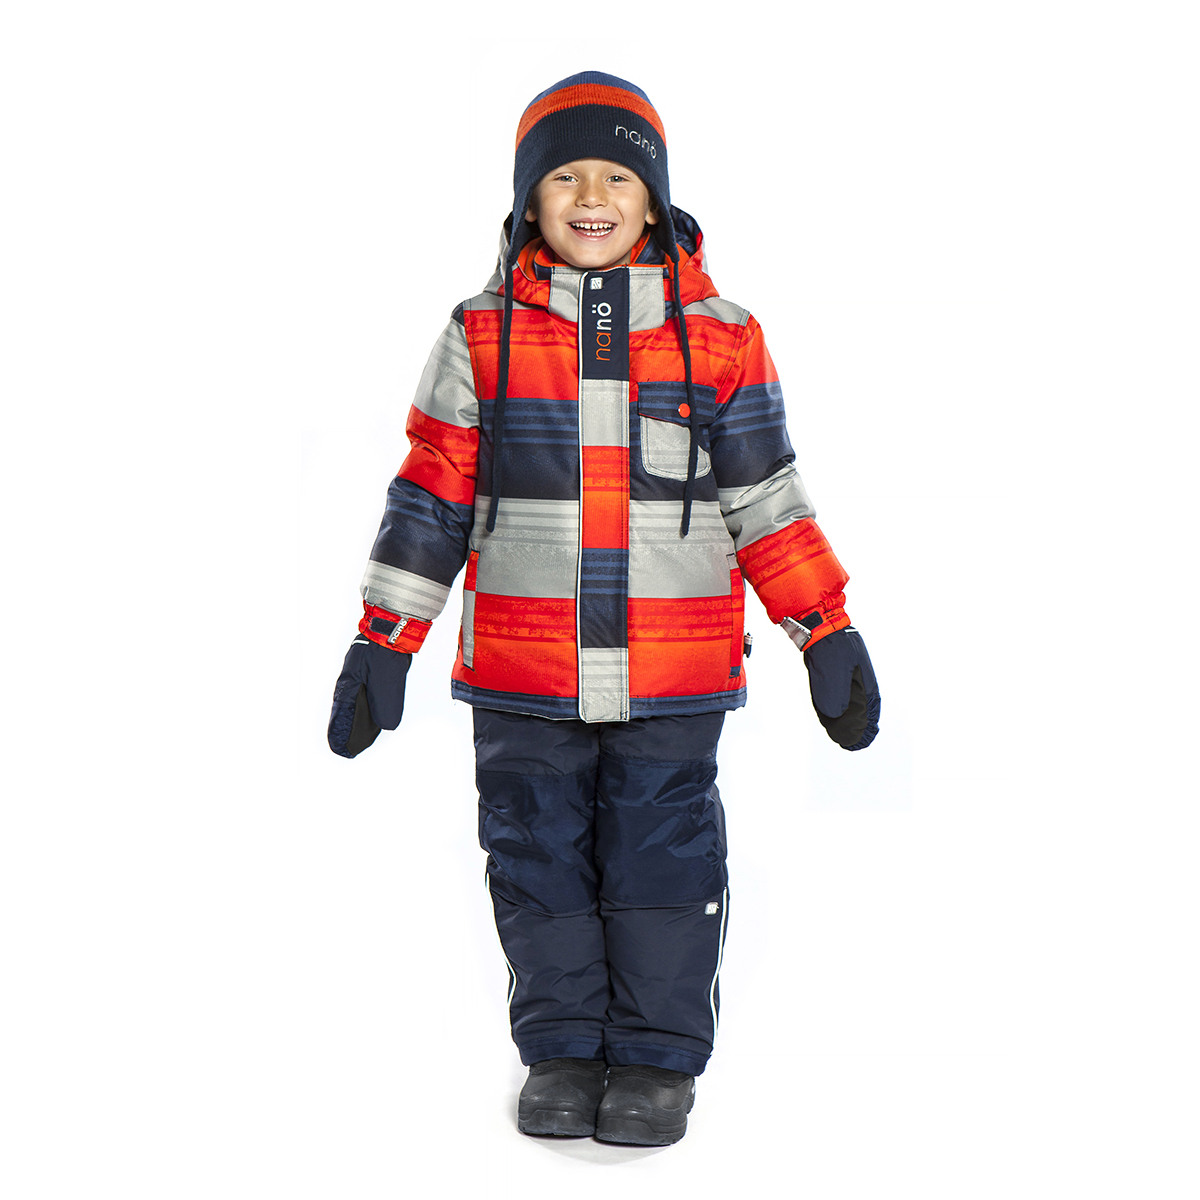 Toddler Snowsuits. Showing 48 of results that match your query. Search Product Result. Product - Bear Ear Minky Plush Snowsuit Pram (Baby Girls) Product Image. Price Product - iXtreme Baby Boys Snowsuit Pram Expedition Winter Puffer Jacket. Reduced Price. Product Image. Price $ .